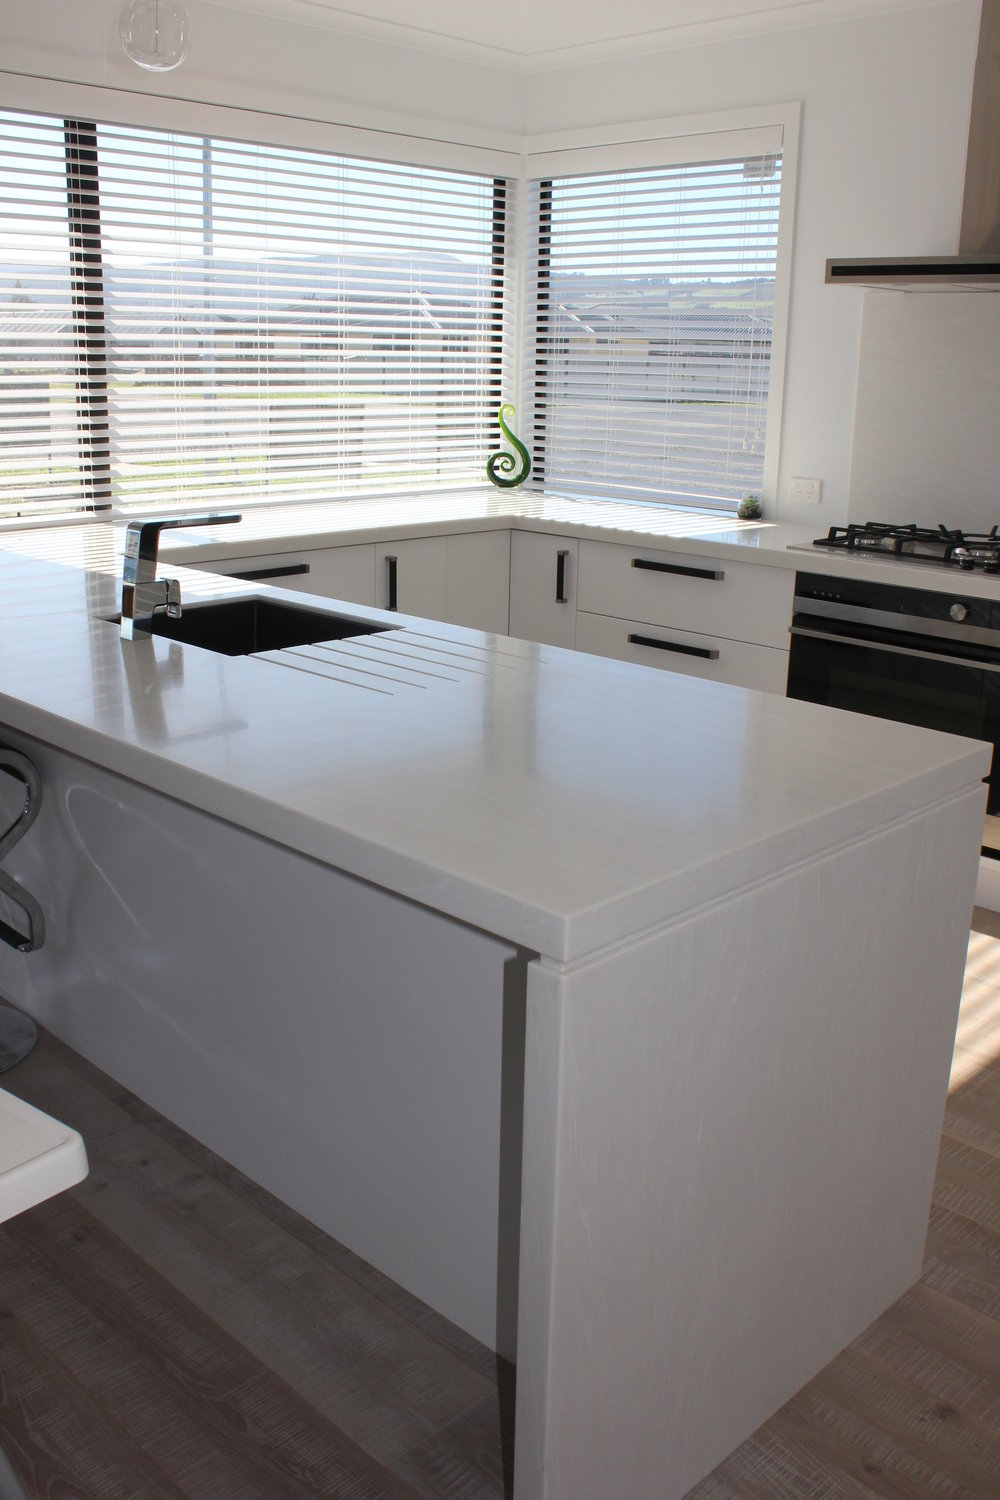 TriStone Milk Grotto benchtop (U-shaped) with negative detailed waterfall end and drainer grooves.